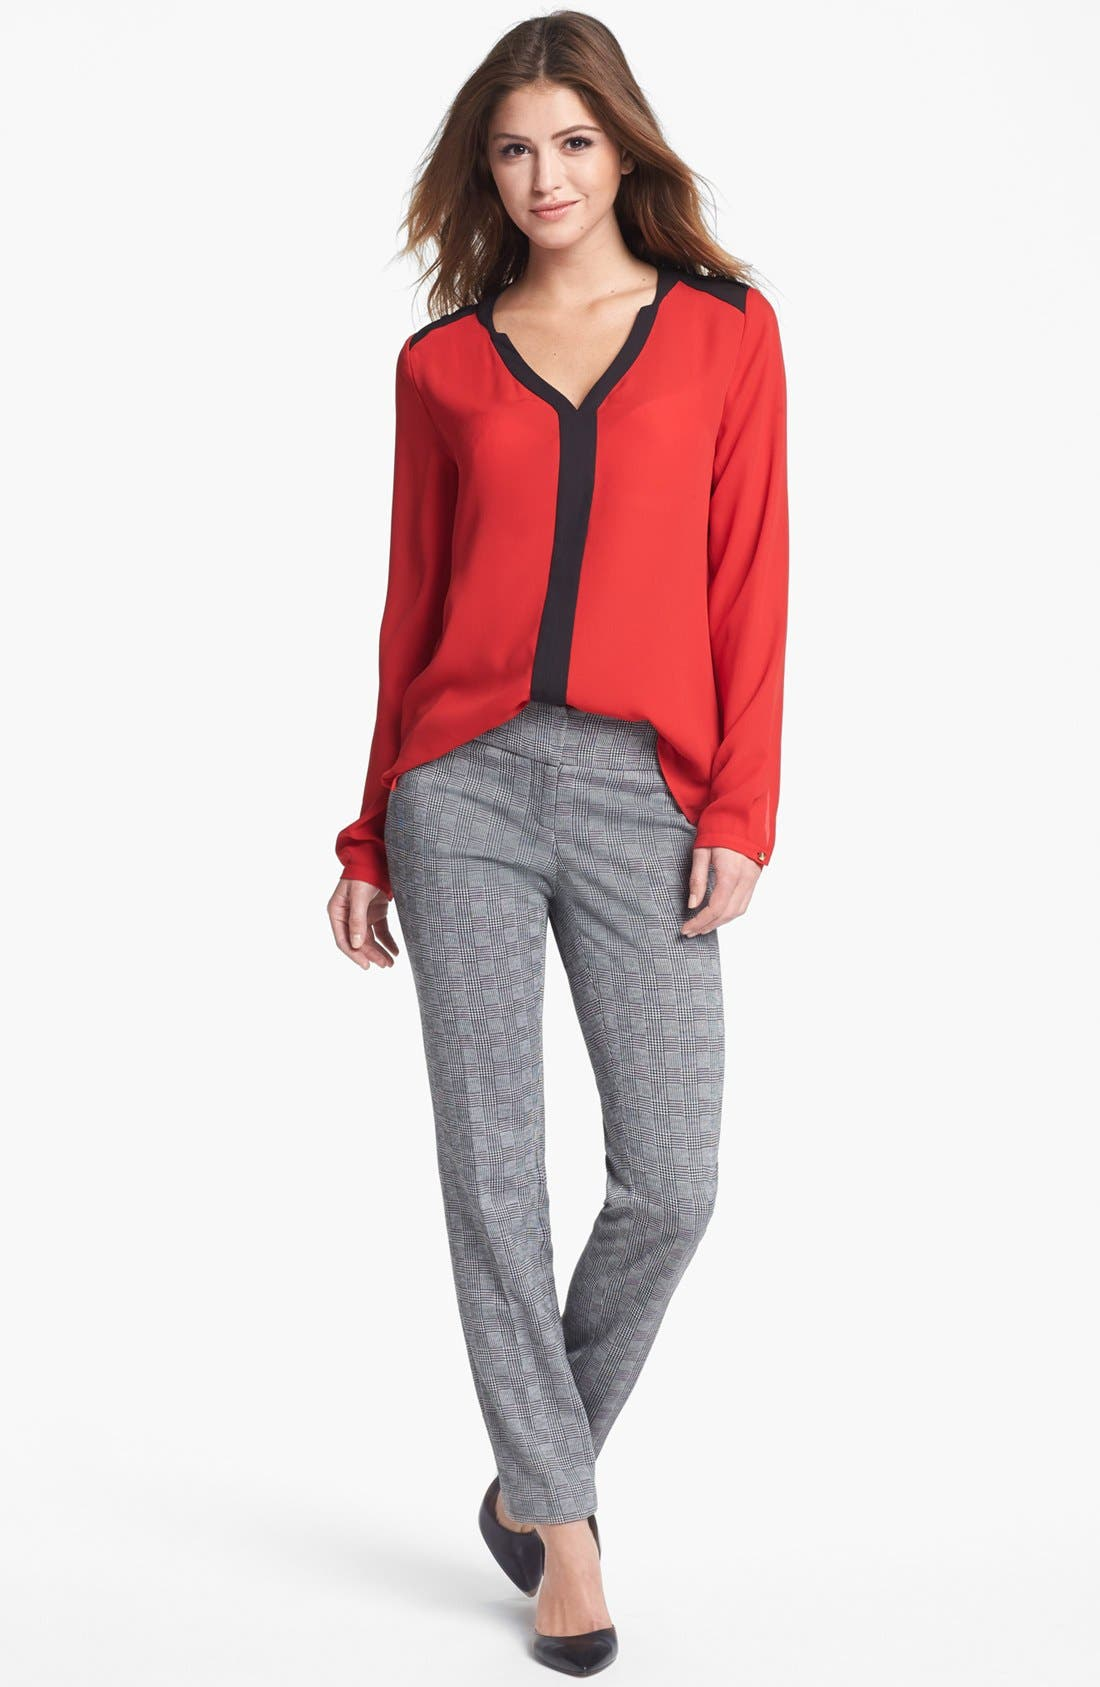 Alternate Image 1 Selected - Vince Camuto Blouse & Pants